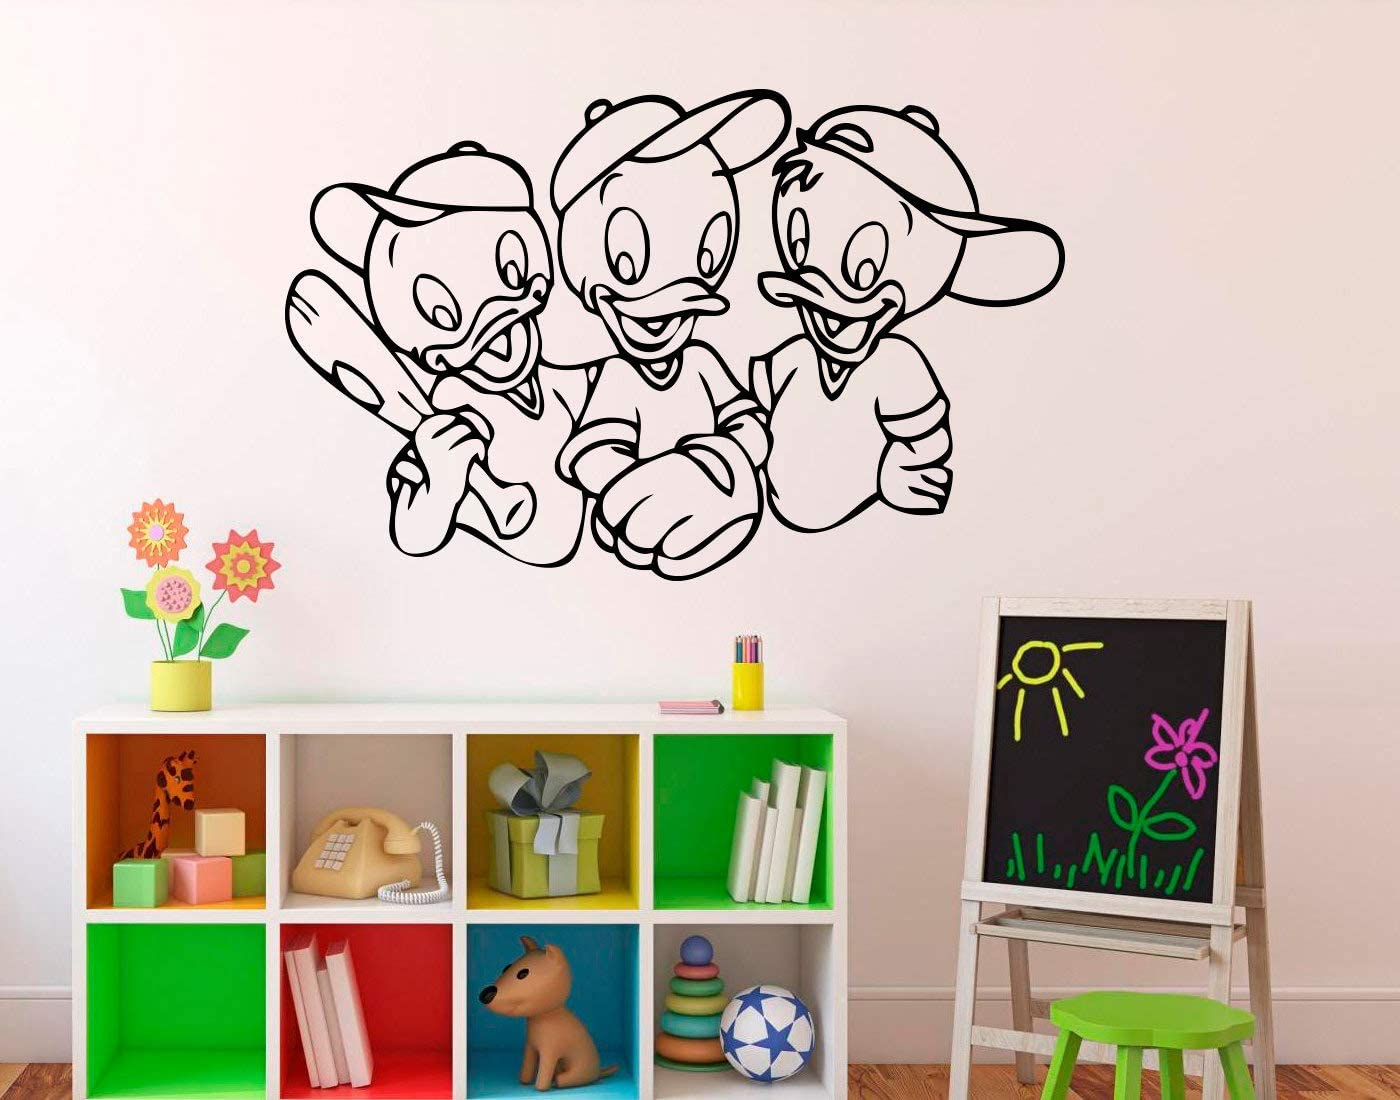 Place Duck Tales Disney Wall Decal - Cartoons Wall Vinyl Sticker Uncle Scrooge Home Interior - Kids Children's Room Wall Graphics Made in USA - 12x15 Inch